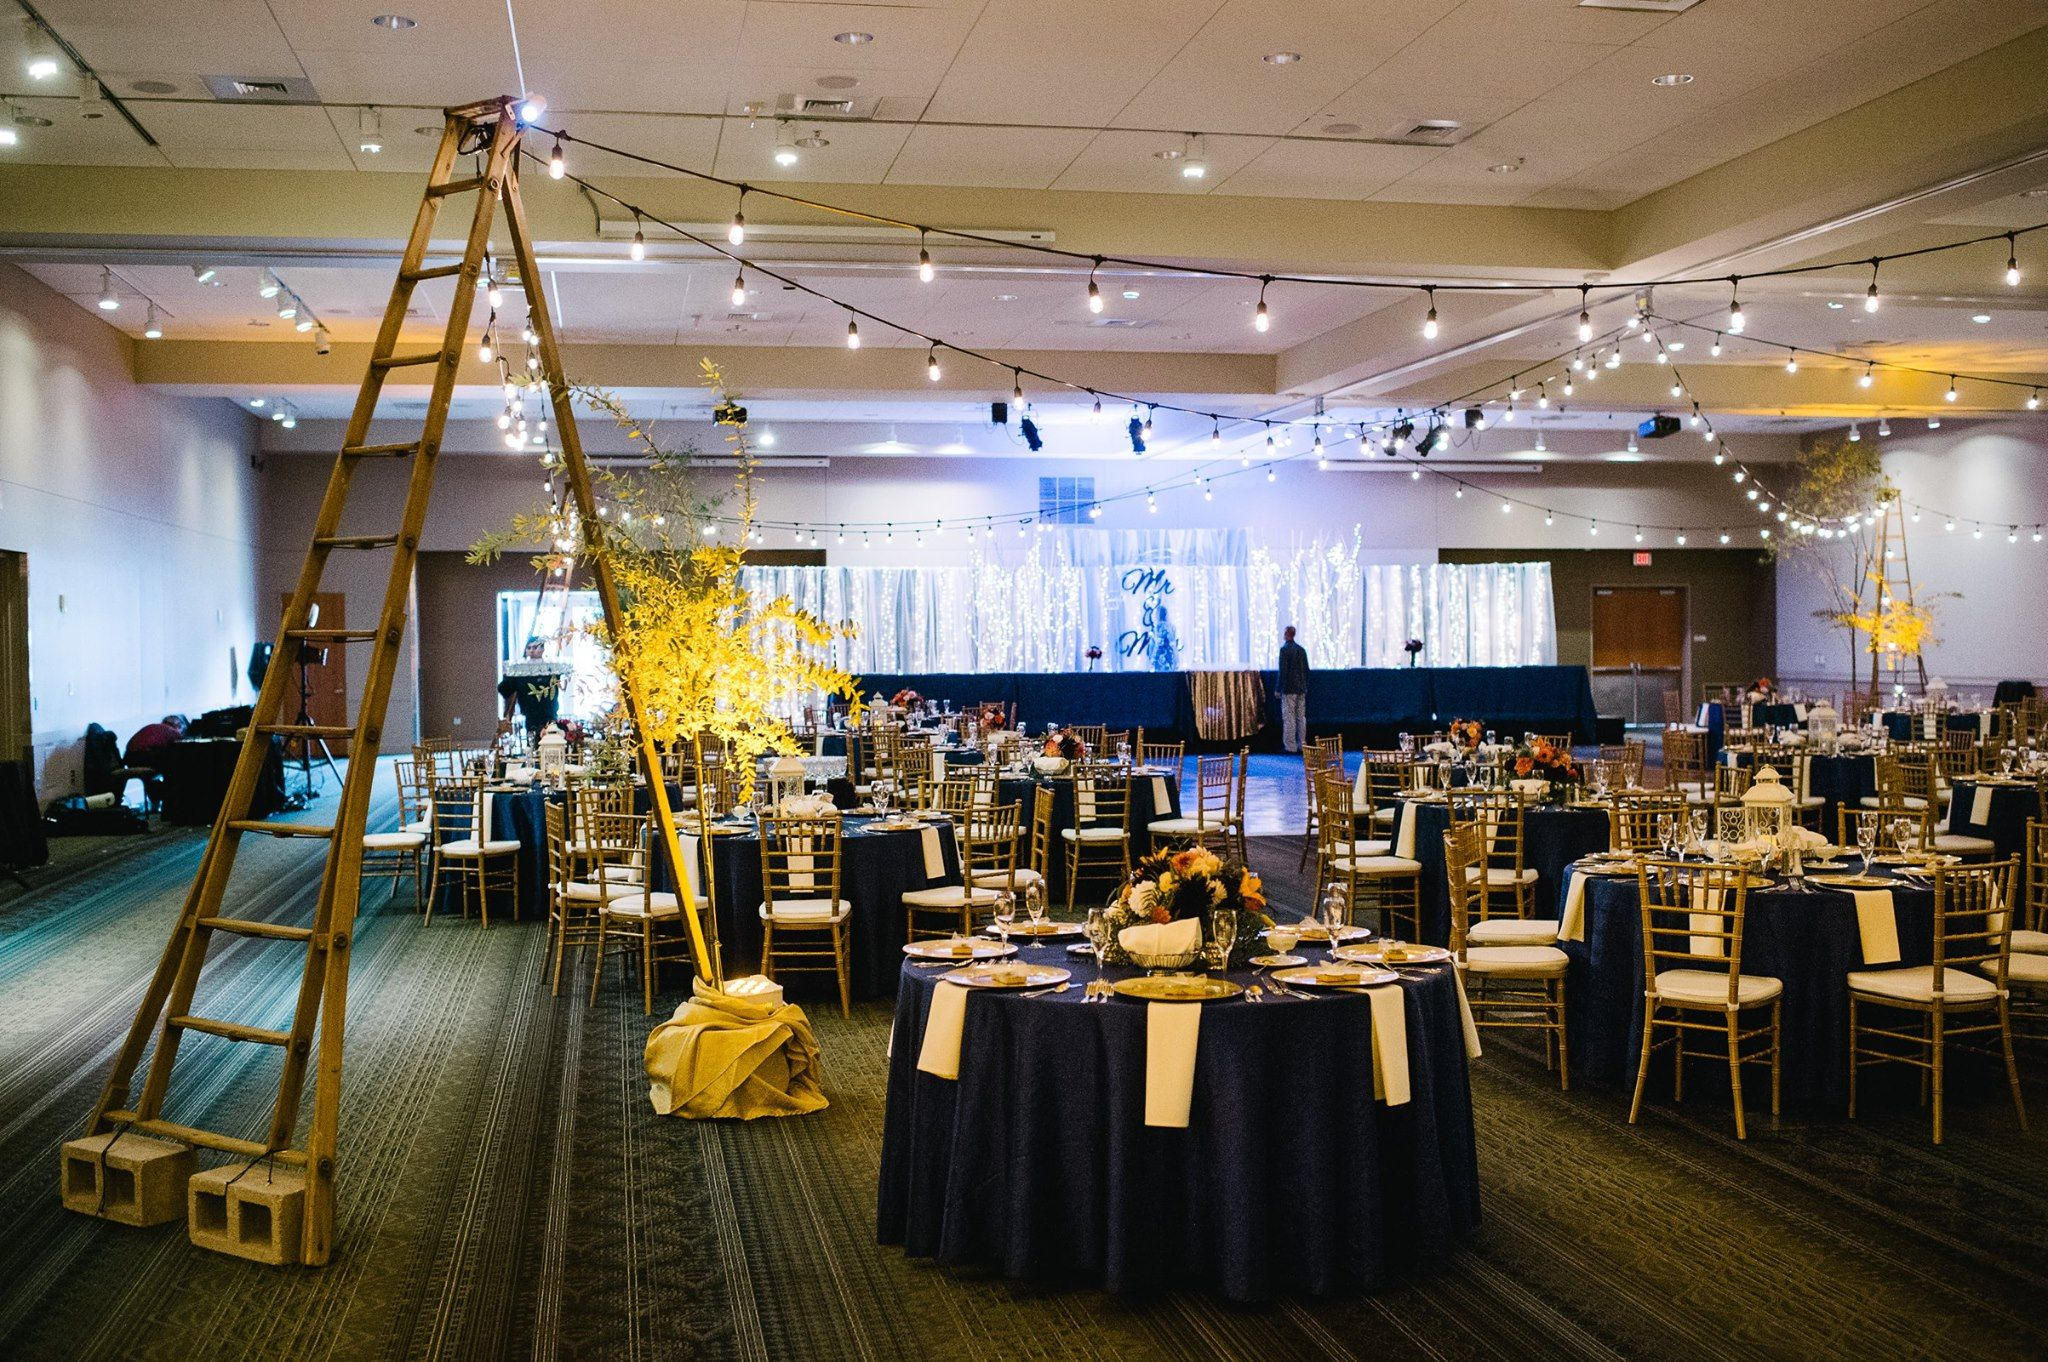 The Beautiful Santiam Ballroom is one of our most